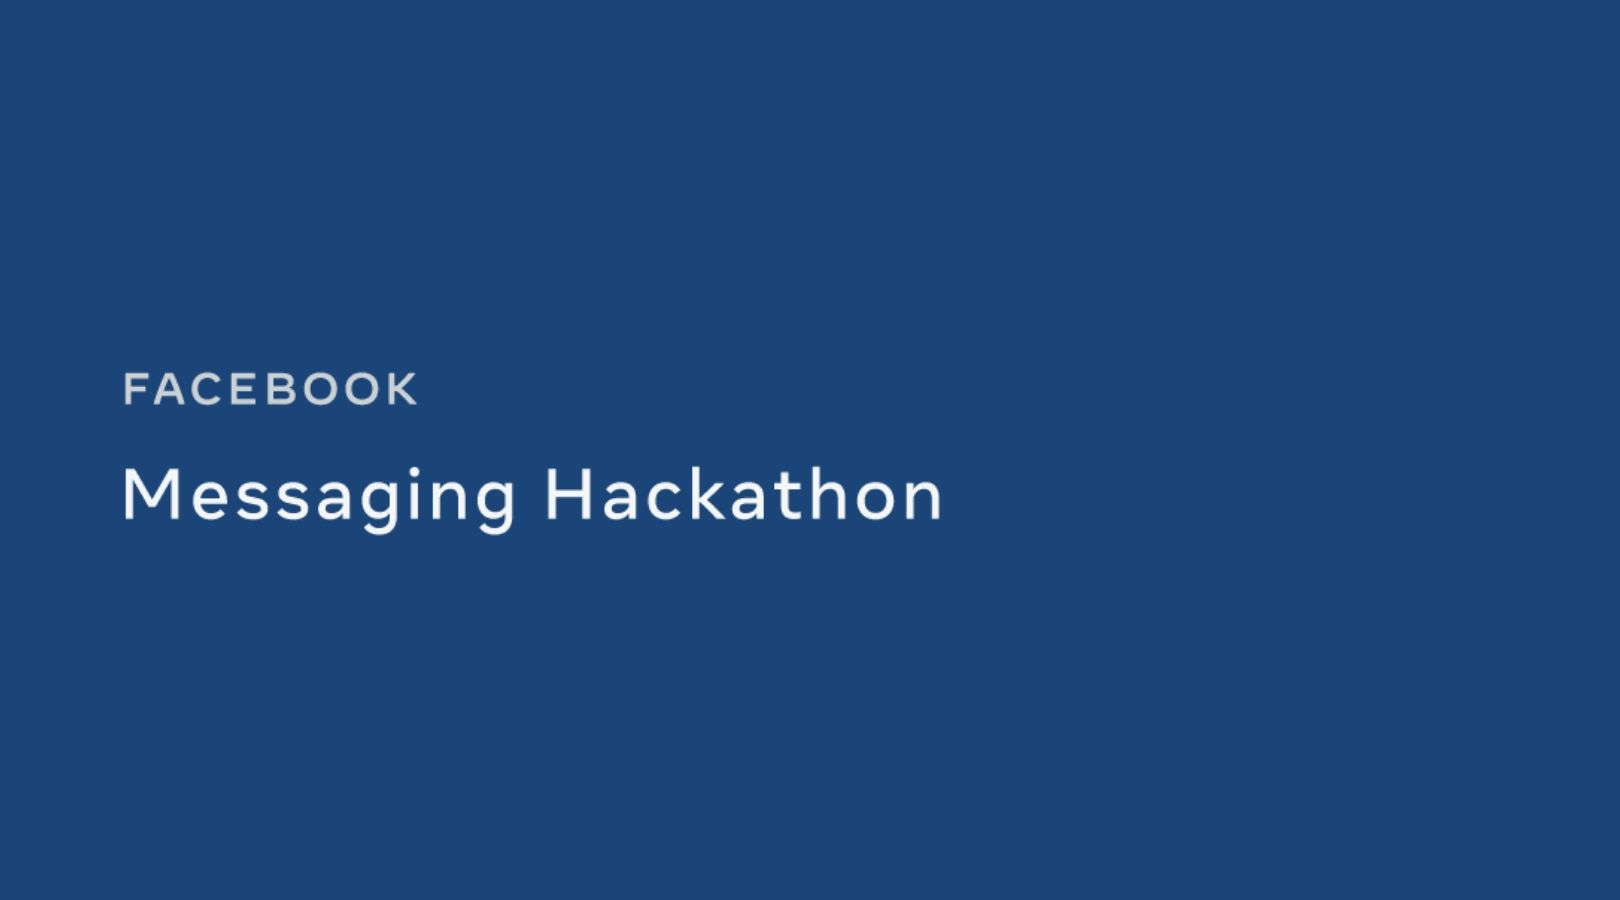 Facebook Messaging Hackathon 2020 ($7,000 in prizes)